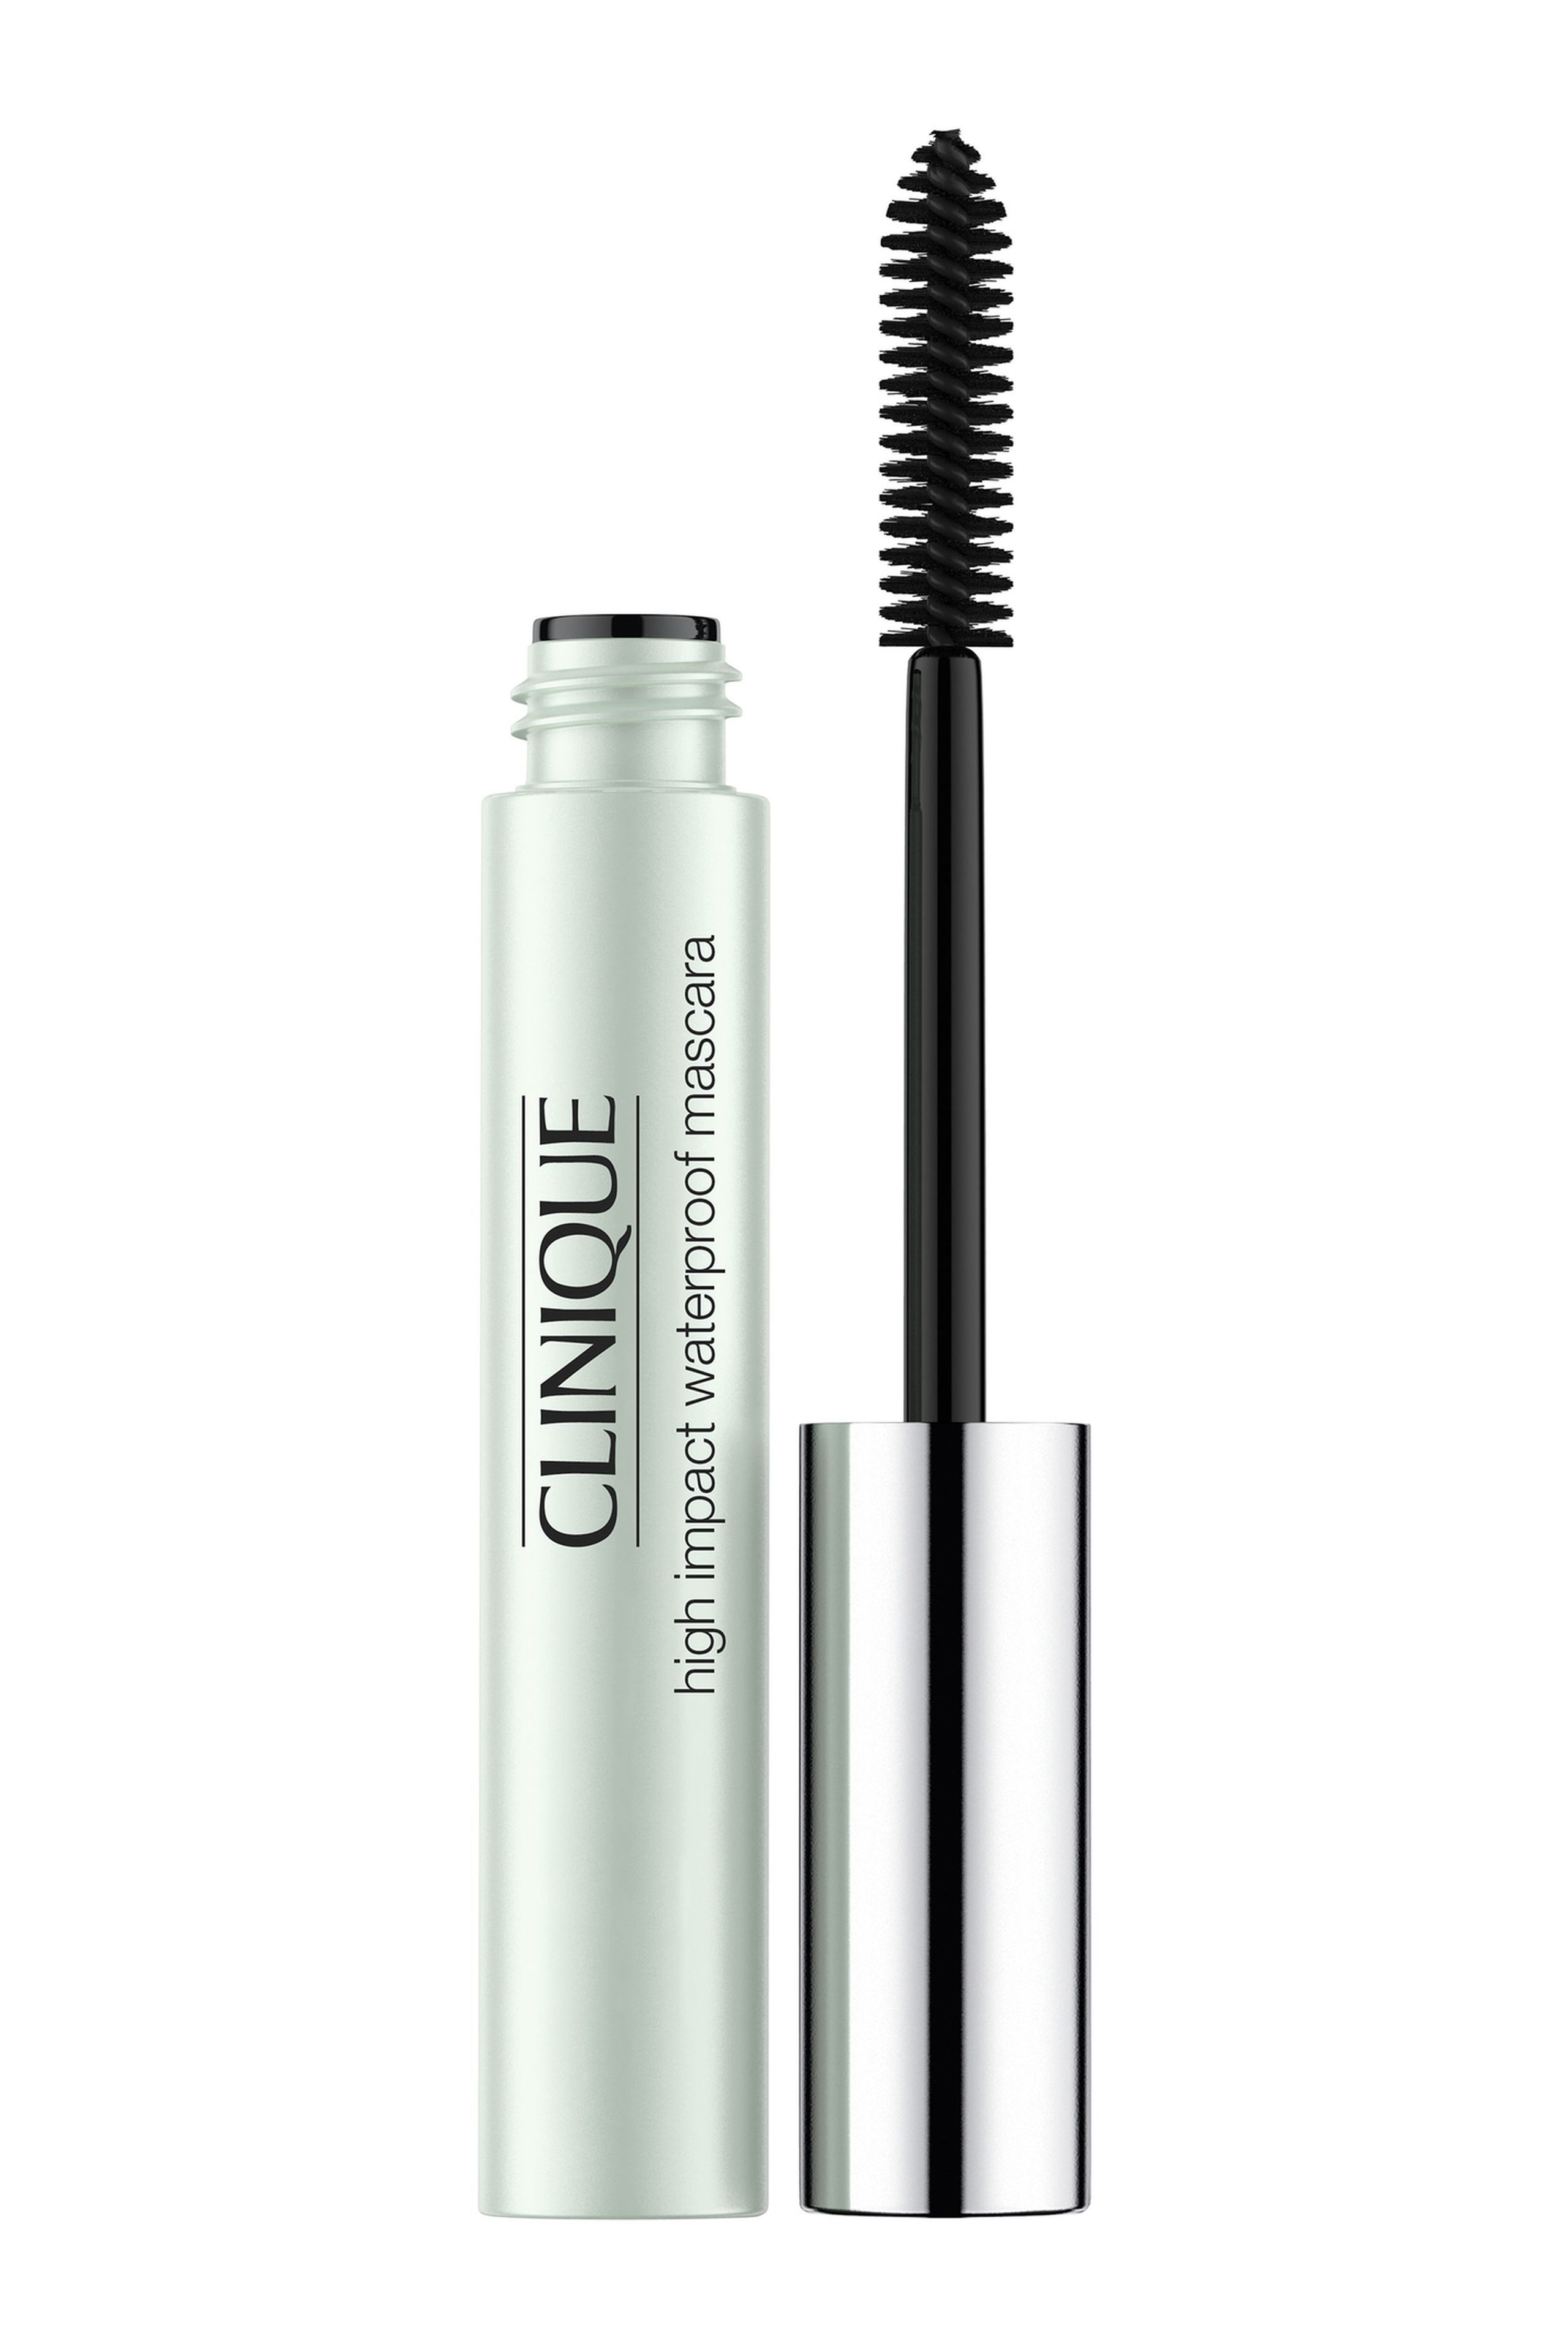 bon mascara waterproof